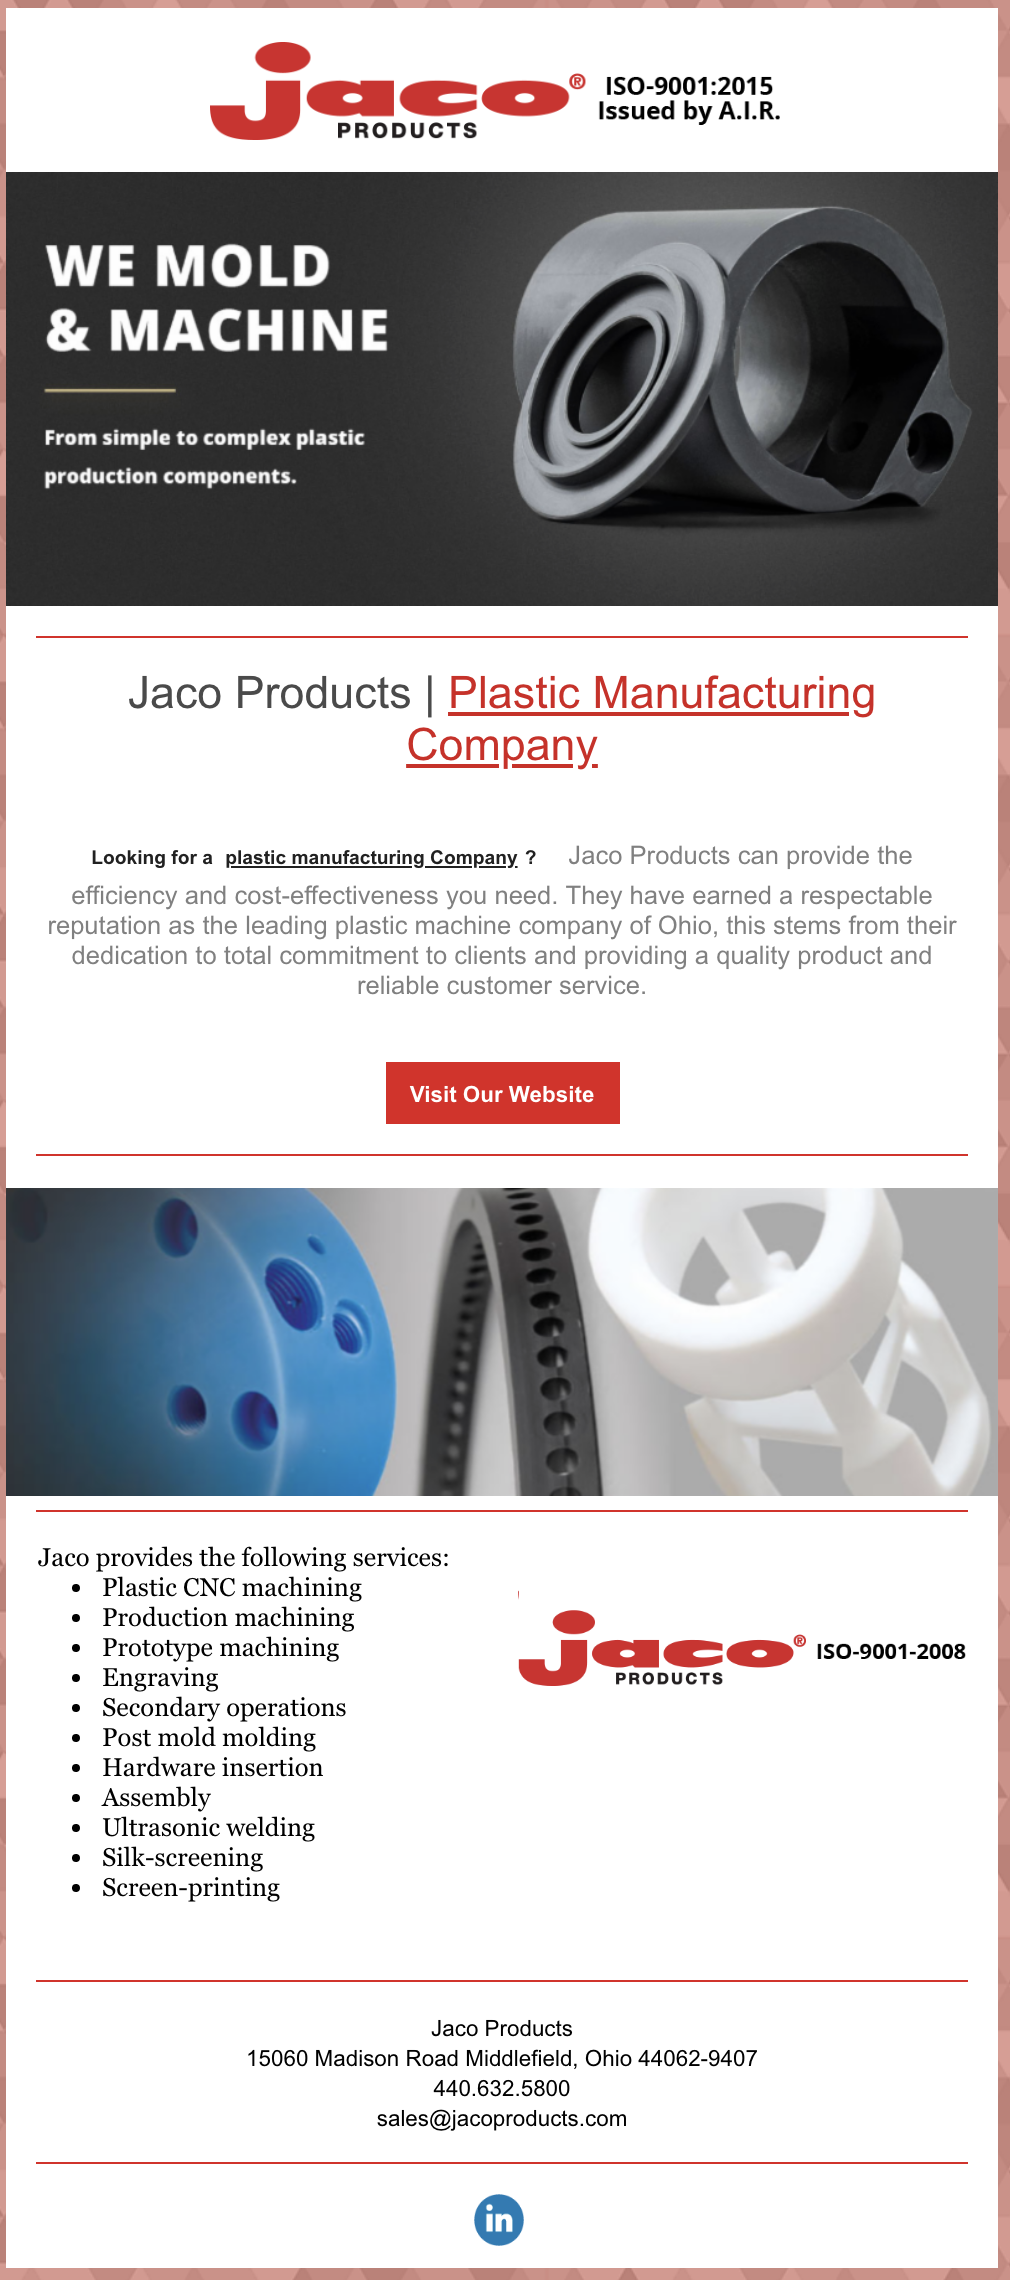 Jaco Products offers a one-stop shop from custom injecting